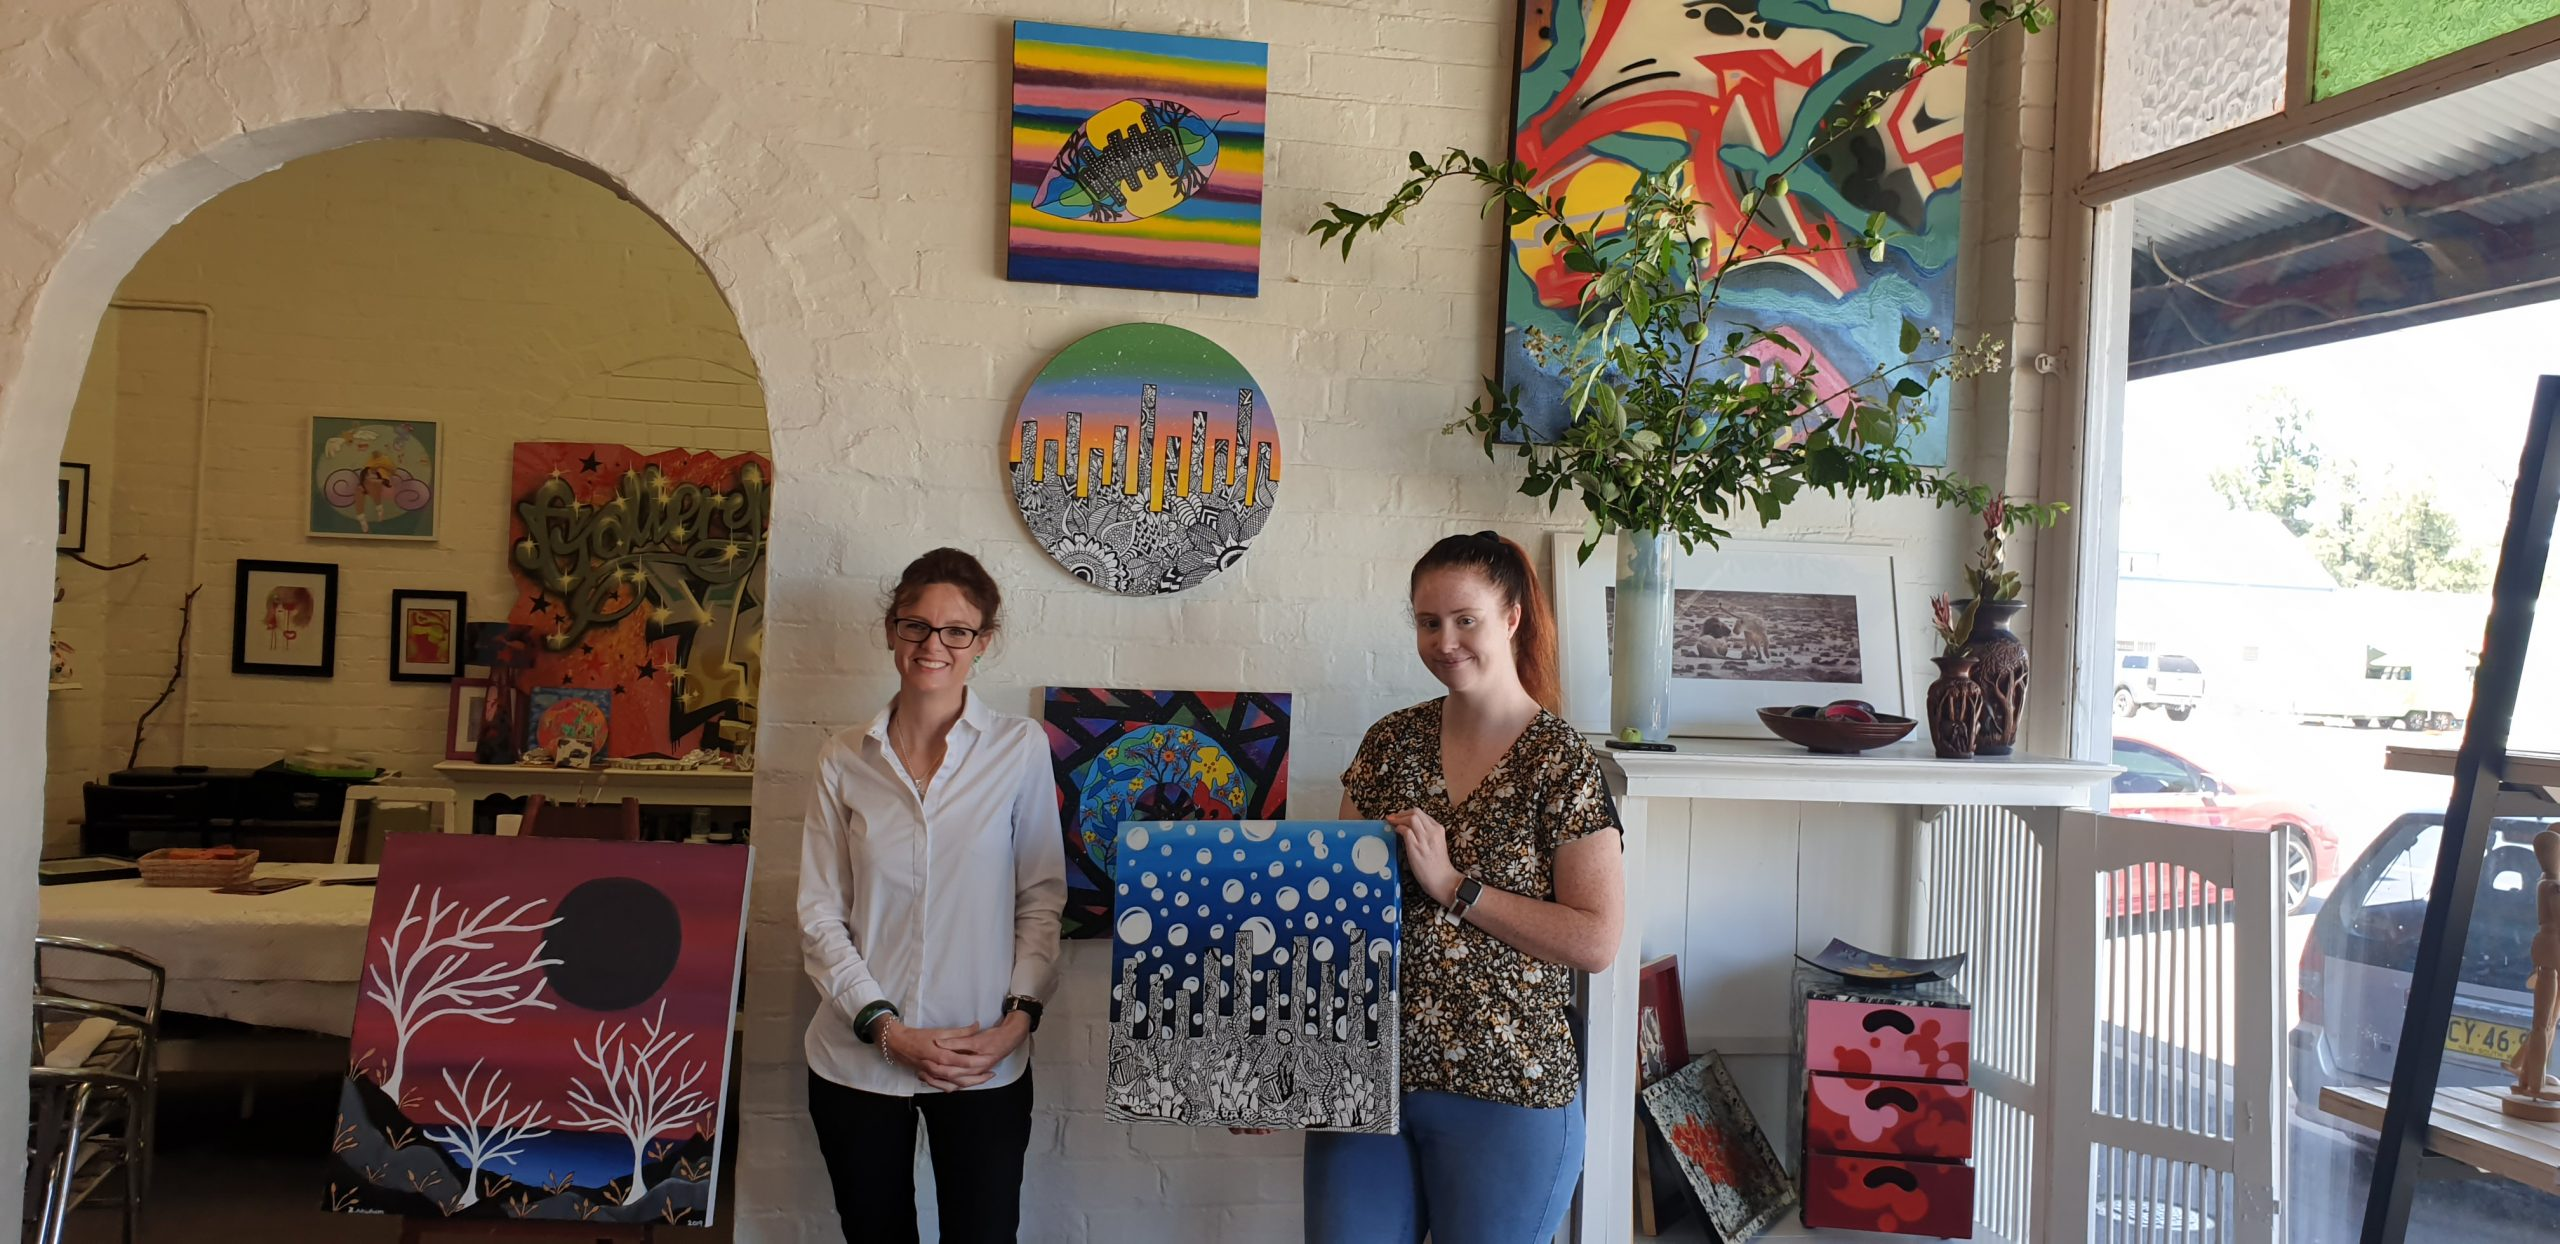 Steph Cooke MP and Zoyie Lee Newham stand in an art gallery surrounded by colourful paintings.